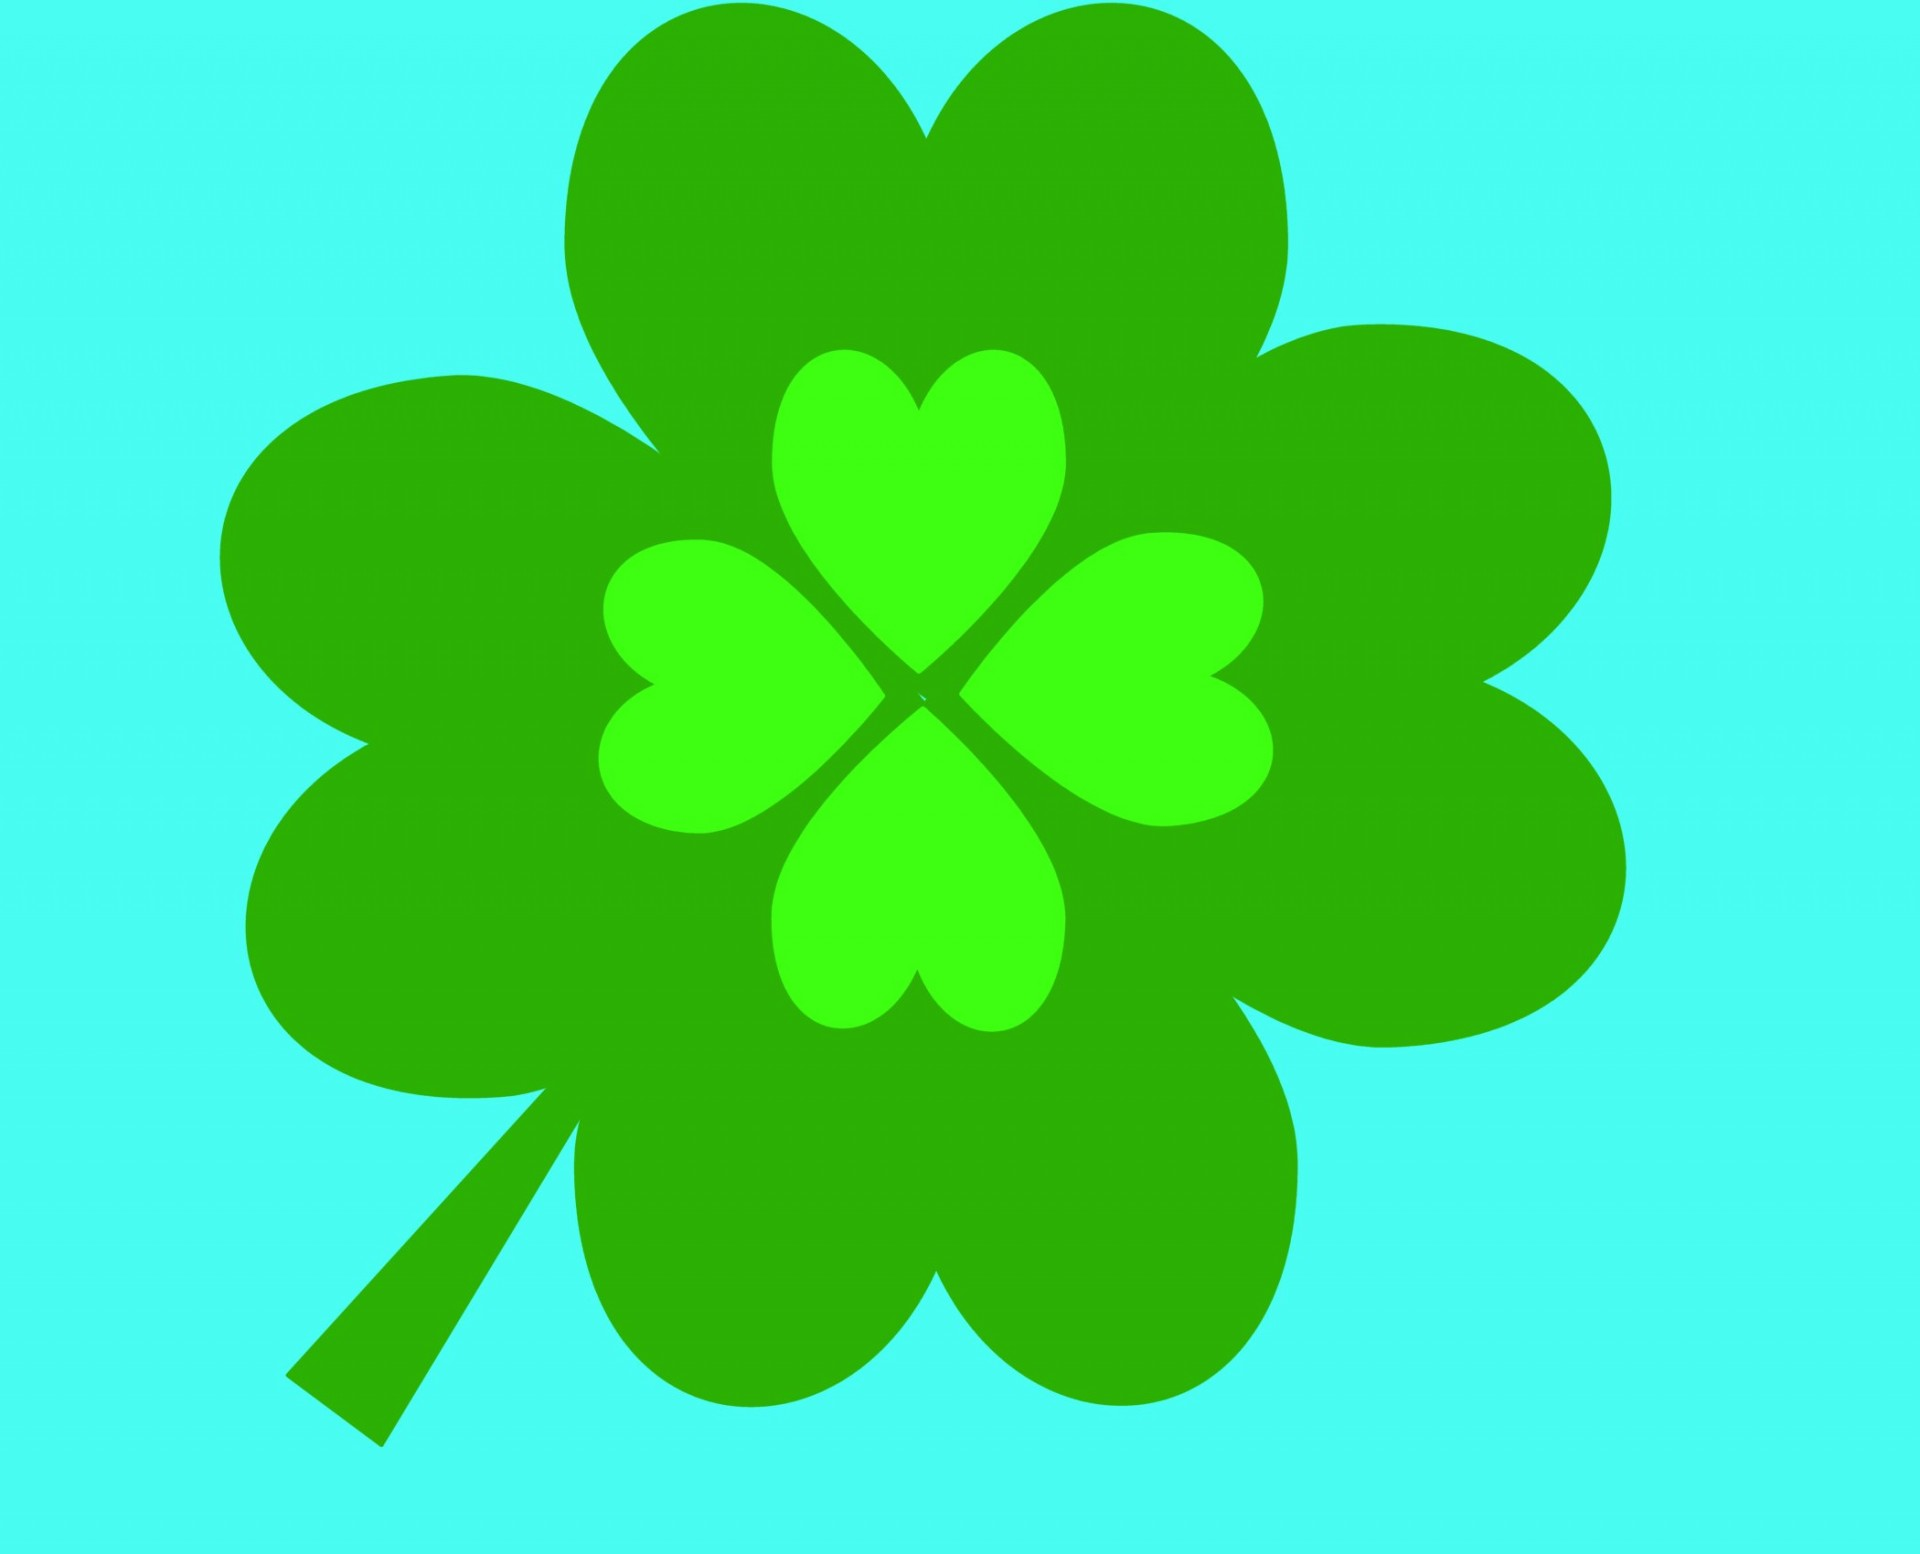 1920x1554 Clover Clipart Good Luck 3170548